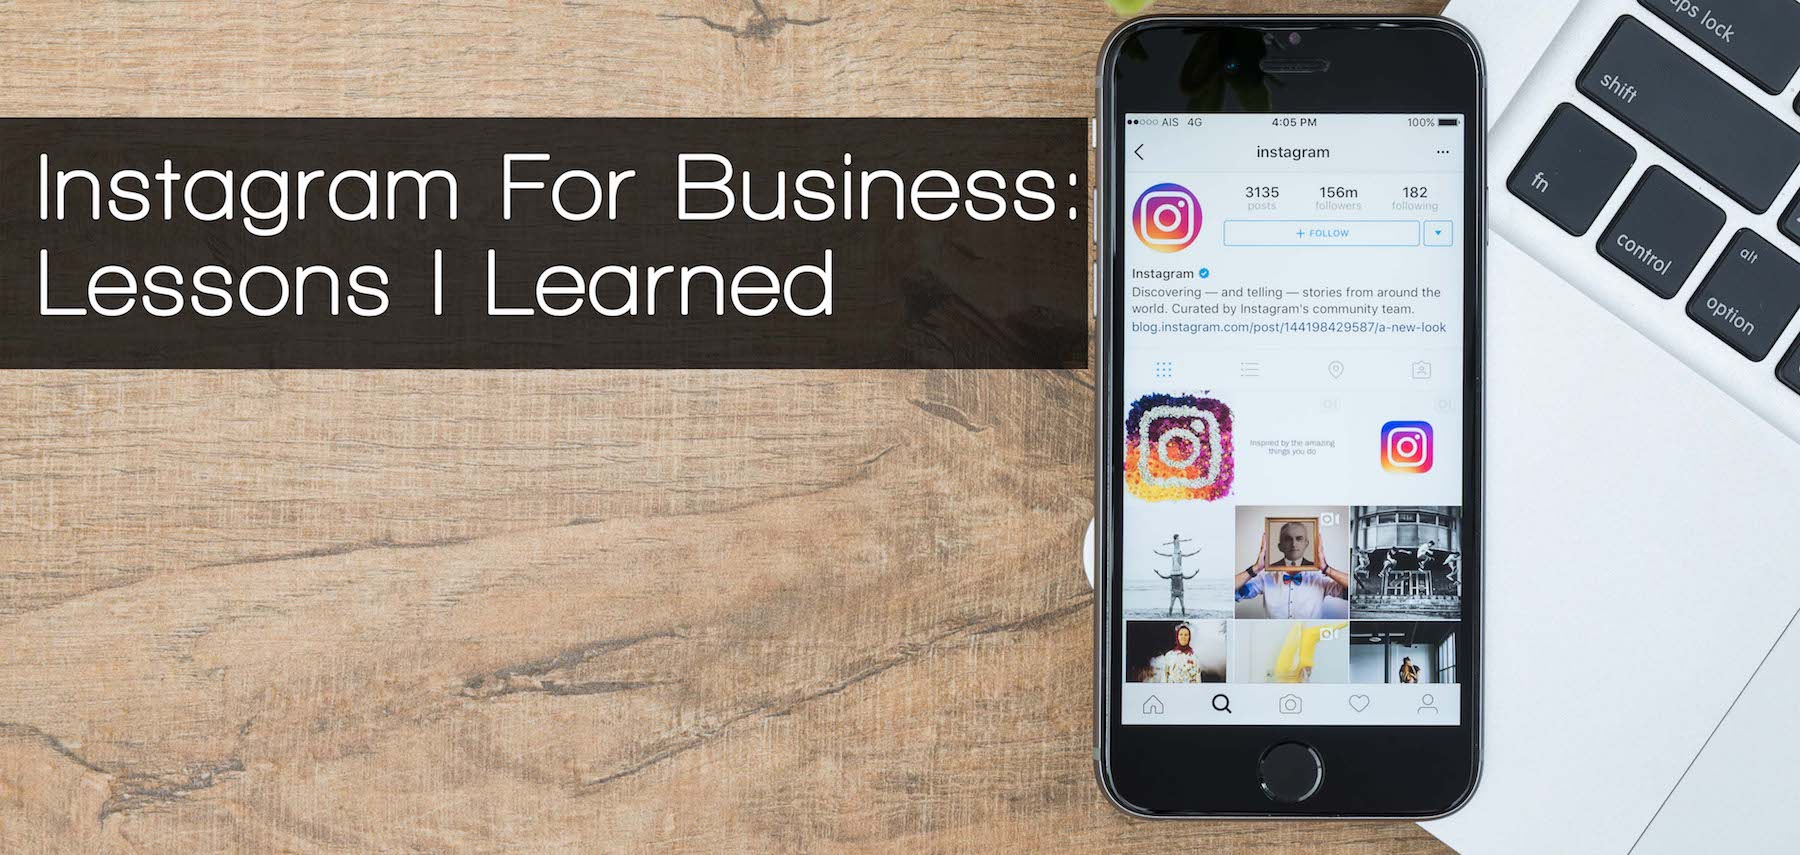 Instagram For Business: Five Lessons (I Learned) to Get More Followers